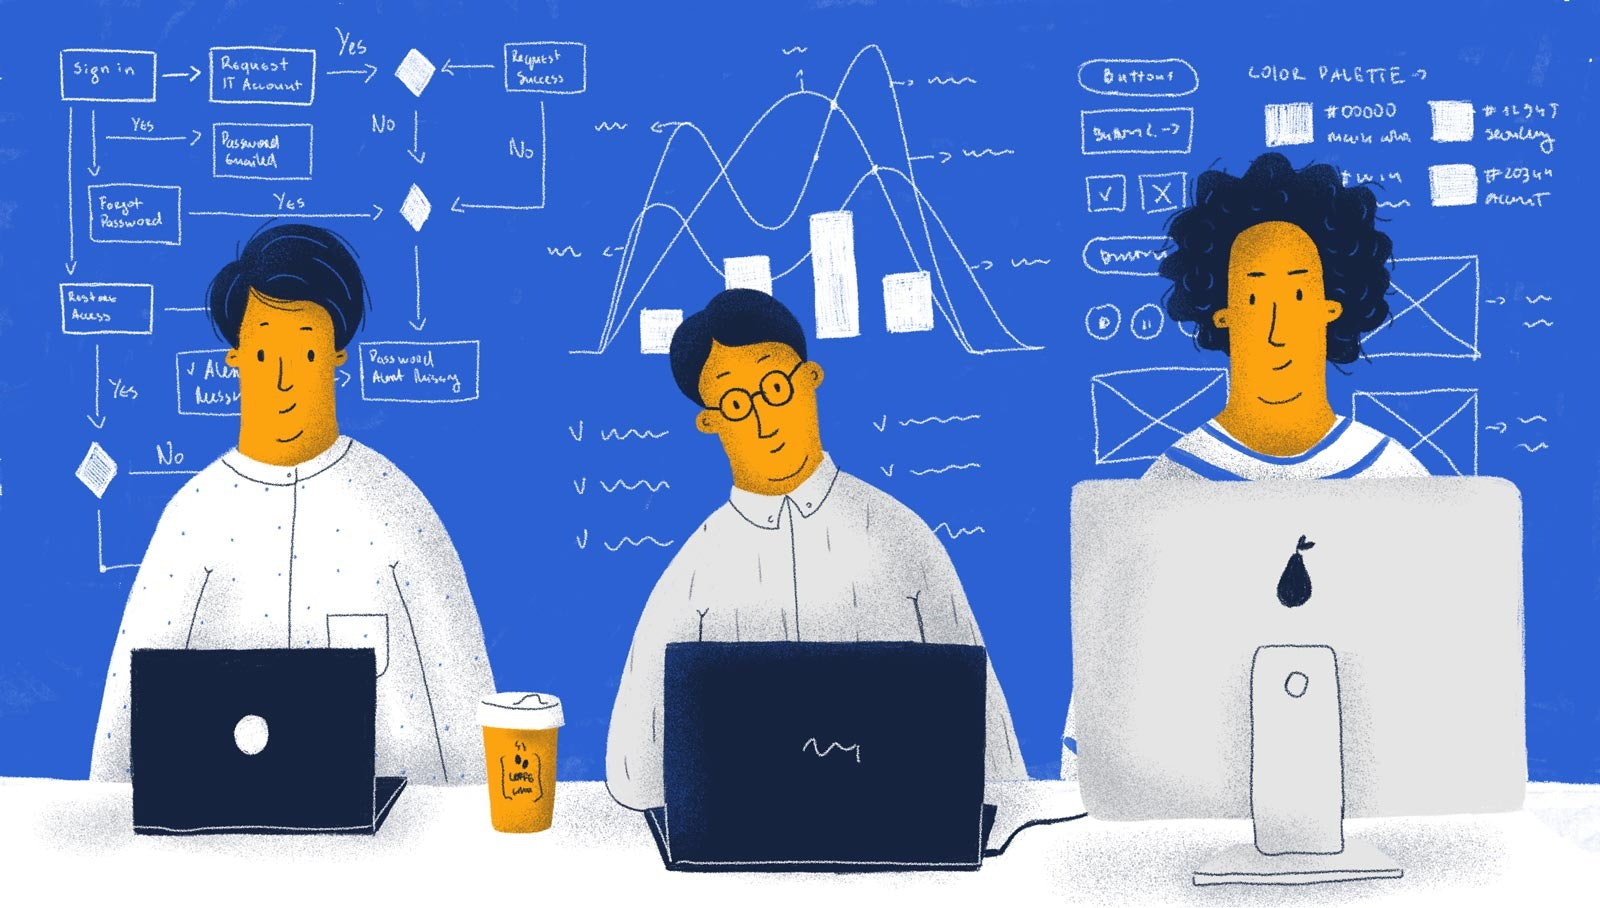 UX architect vs. UX analyst vs. UX designer: What's the difference?